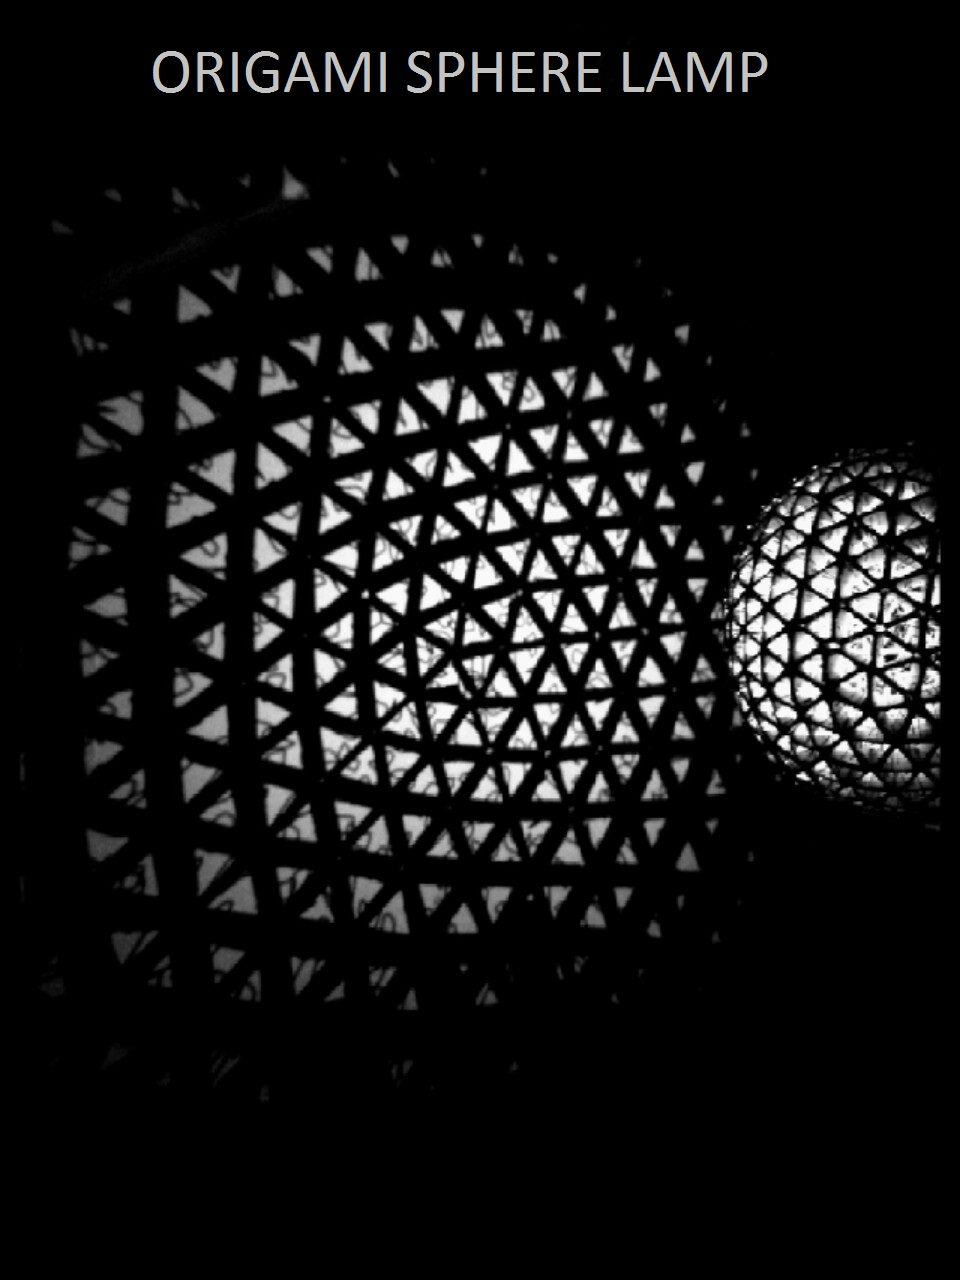 Picture of The Origami Sphere Lamp